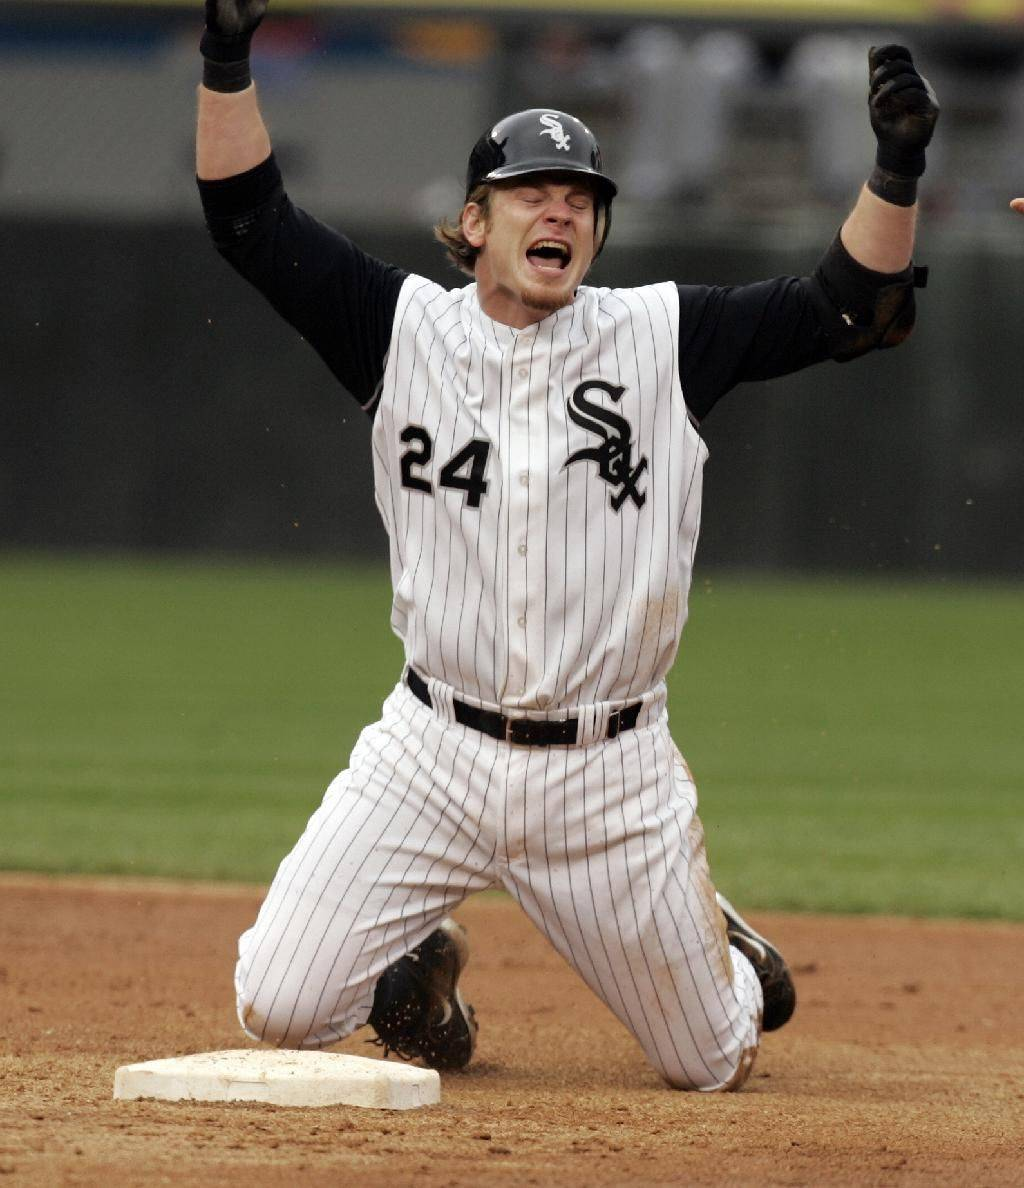 Could Joe Crede come home to coach?